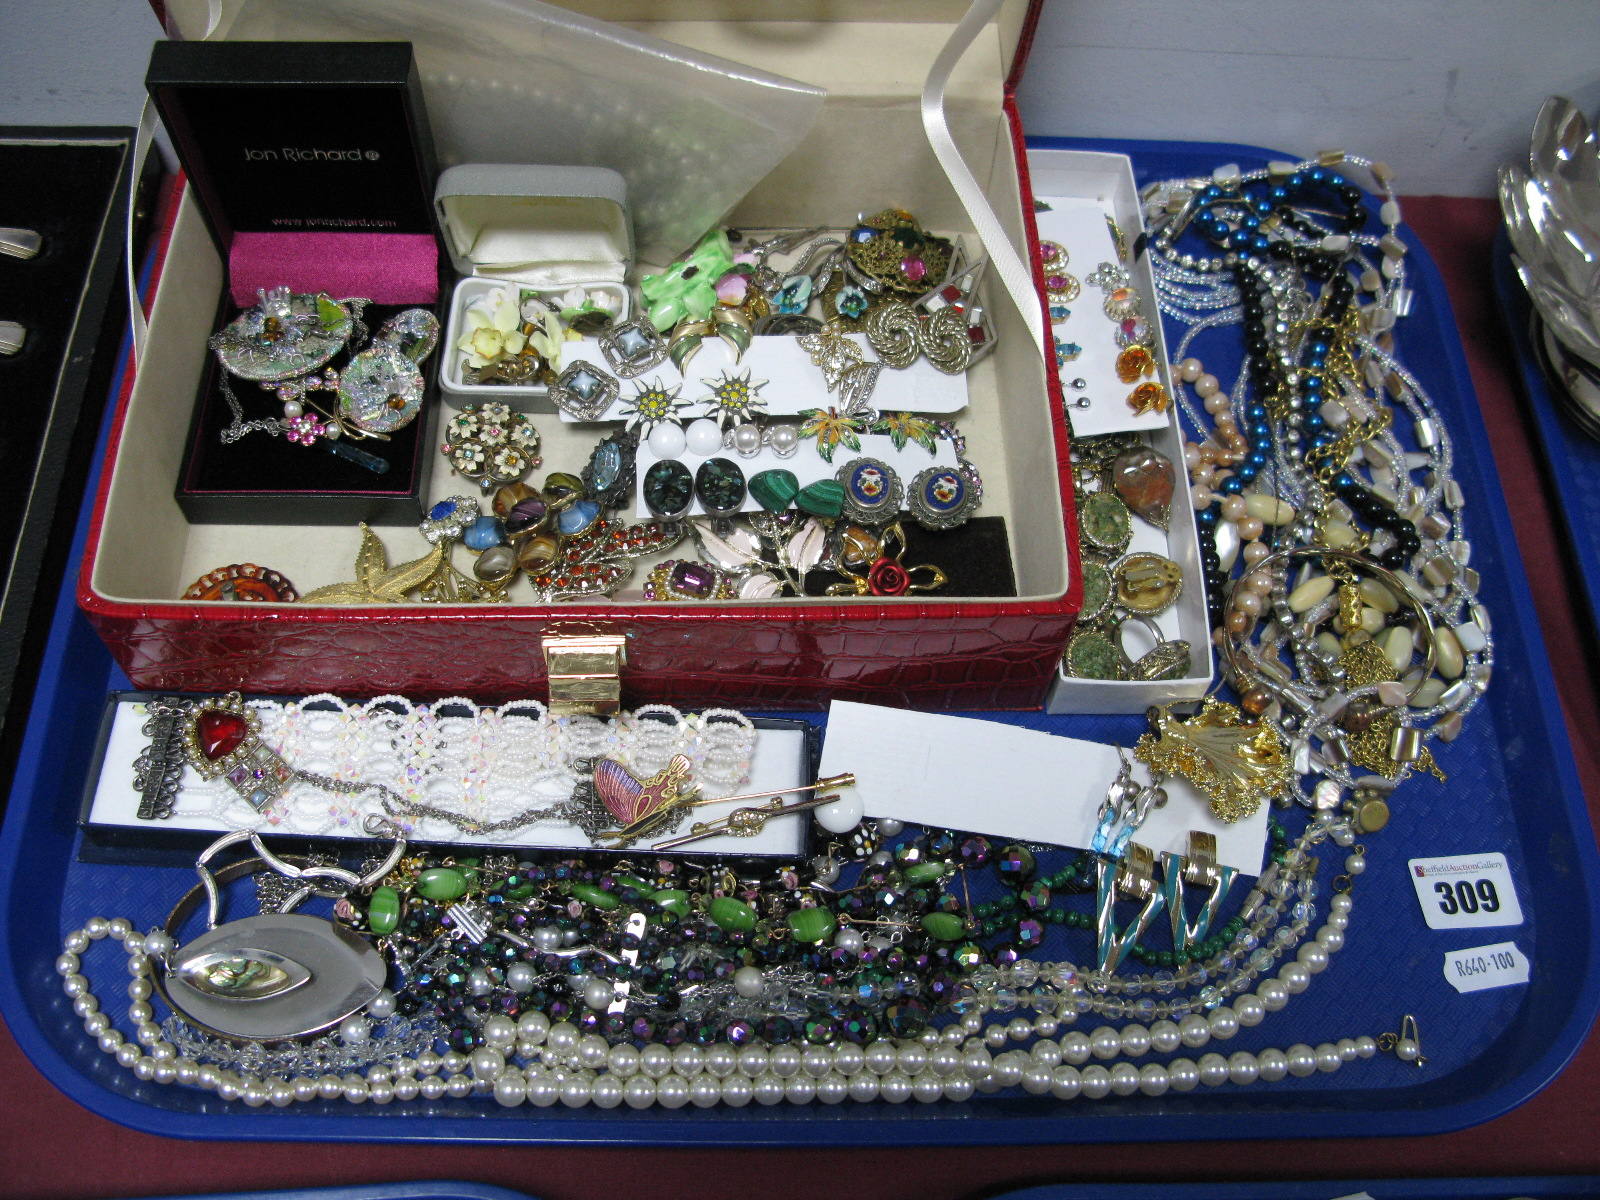 Lot 309 - A Mixed Lot of Assorted Costume Jewellery, including imitation pearls bead necklaces, other